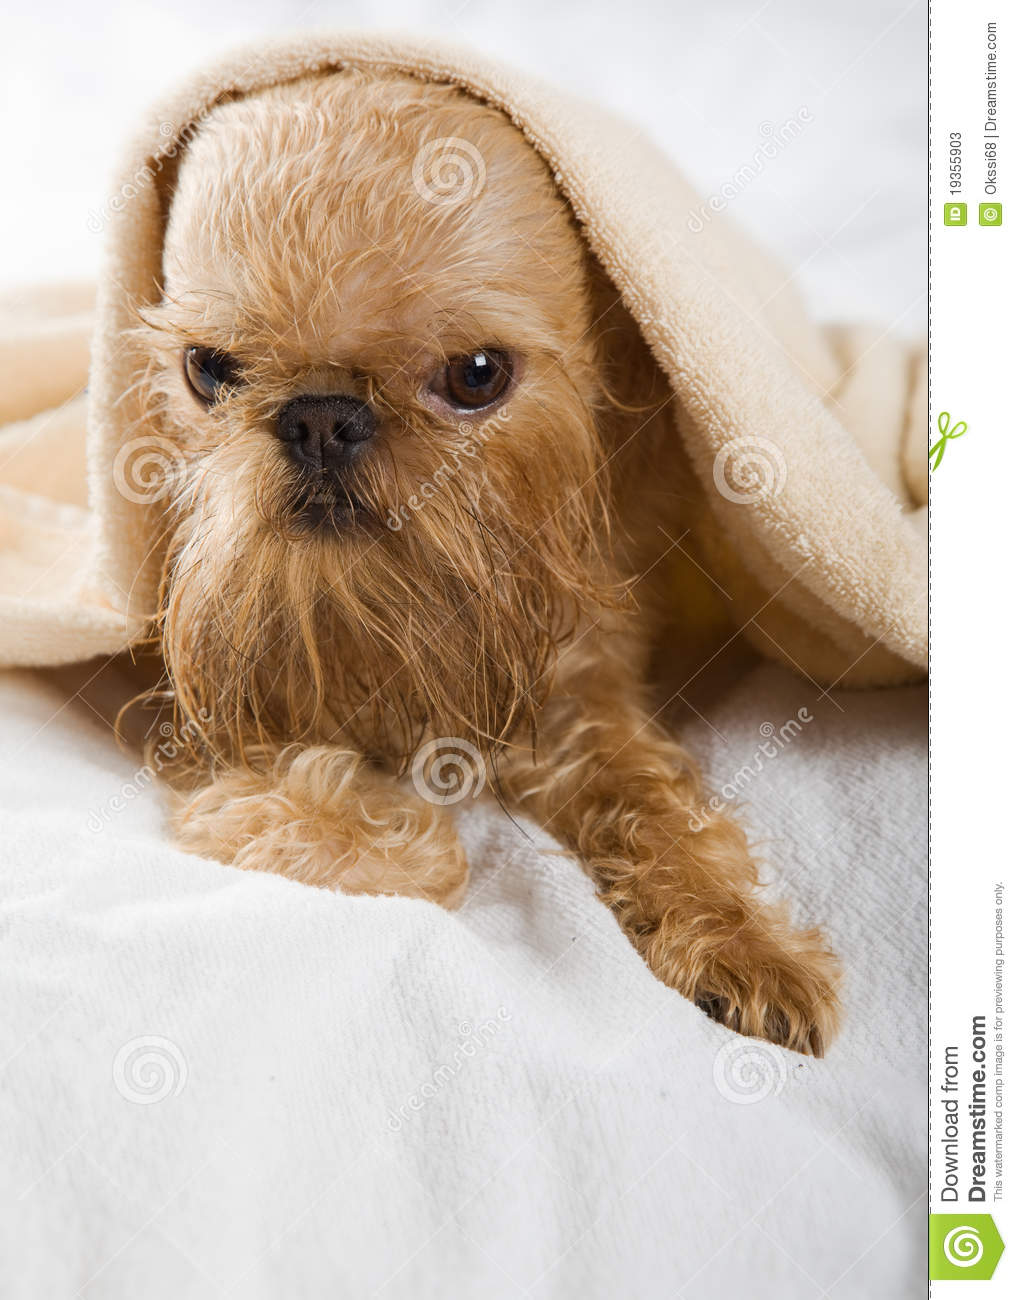 Griffon Bruxellois Stock Image Image Of Breed Canine